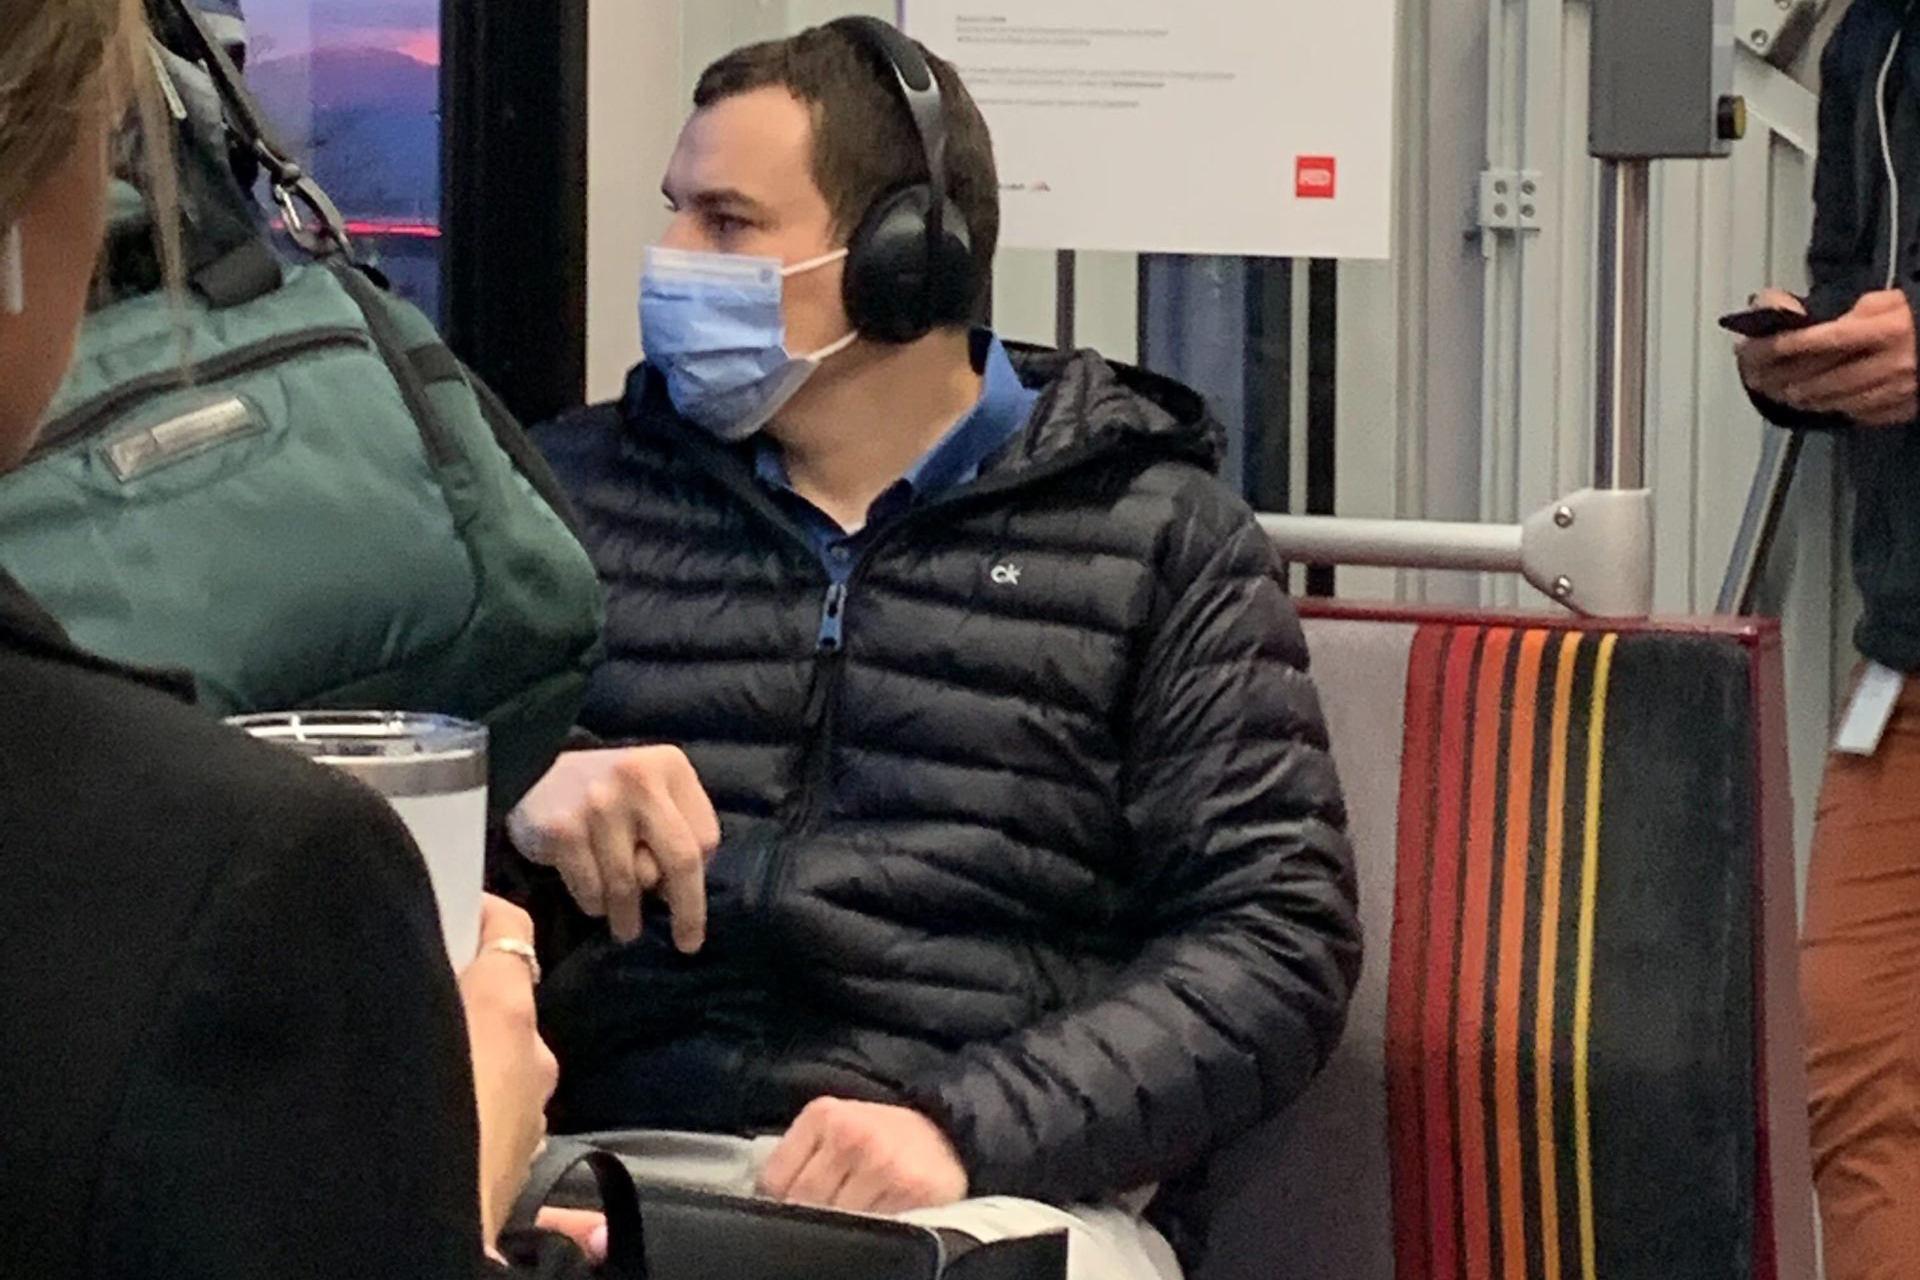 A man wears a health mask while riding RTD's light rail on January 27, 2020.